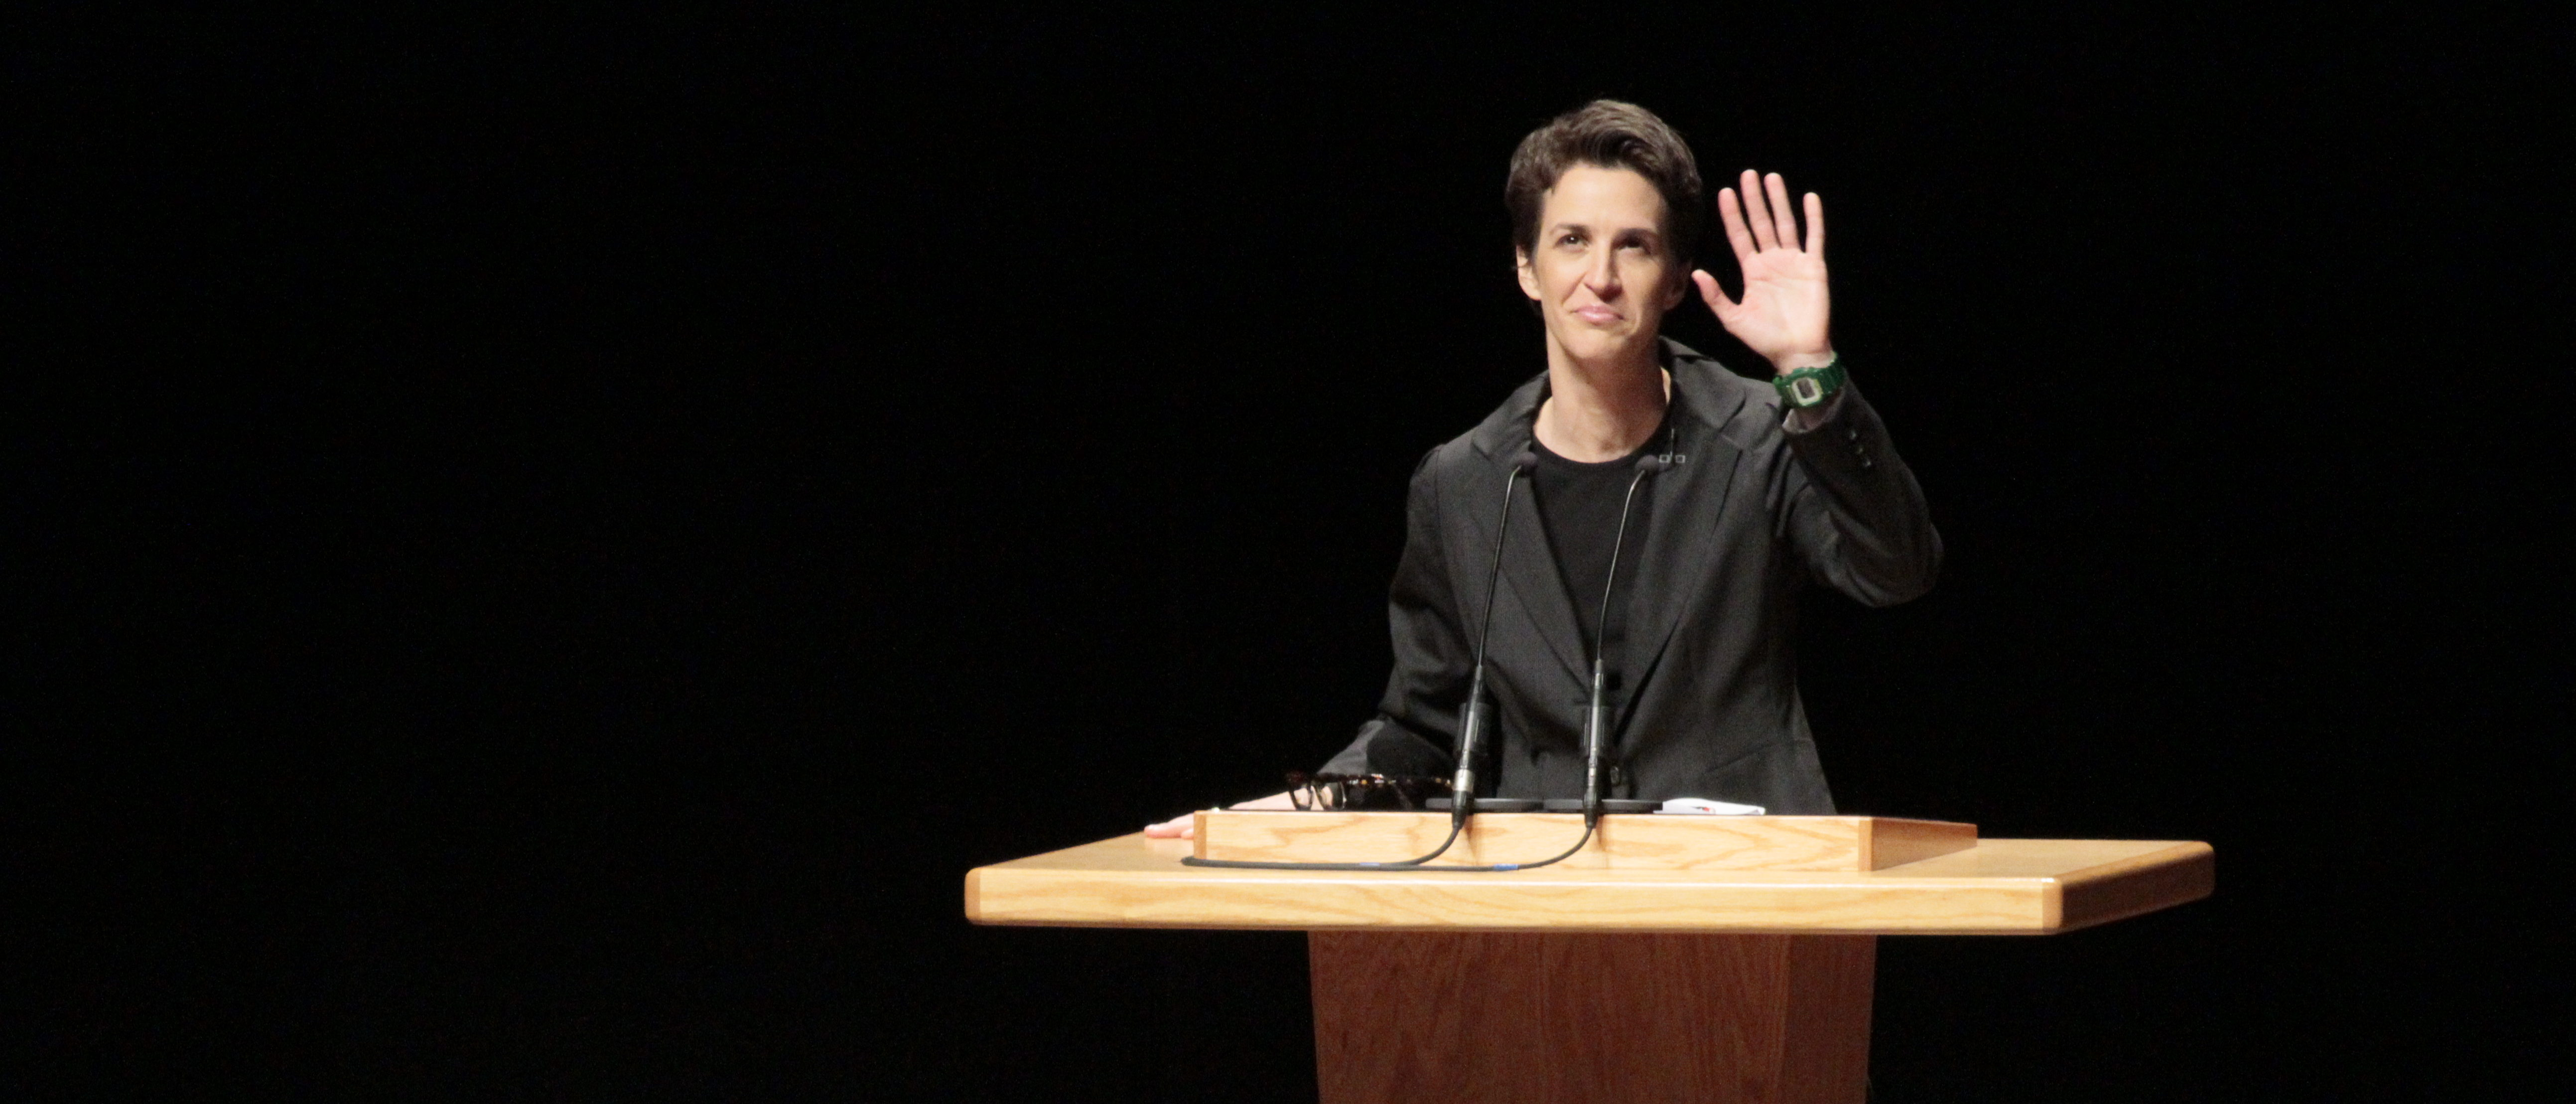 MUNCIE, IN - DECEMBER 02: Rachel Maddow , on December 2, 2011 in Muncie, Indiana. (Photo by Ron Hoskins/Getty Images)